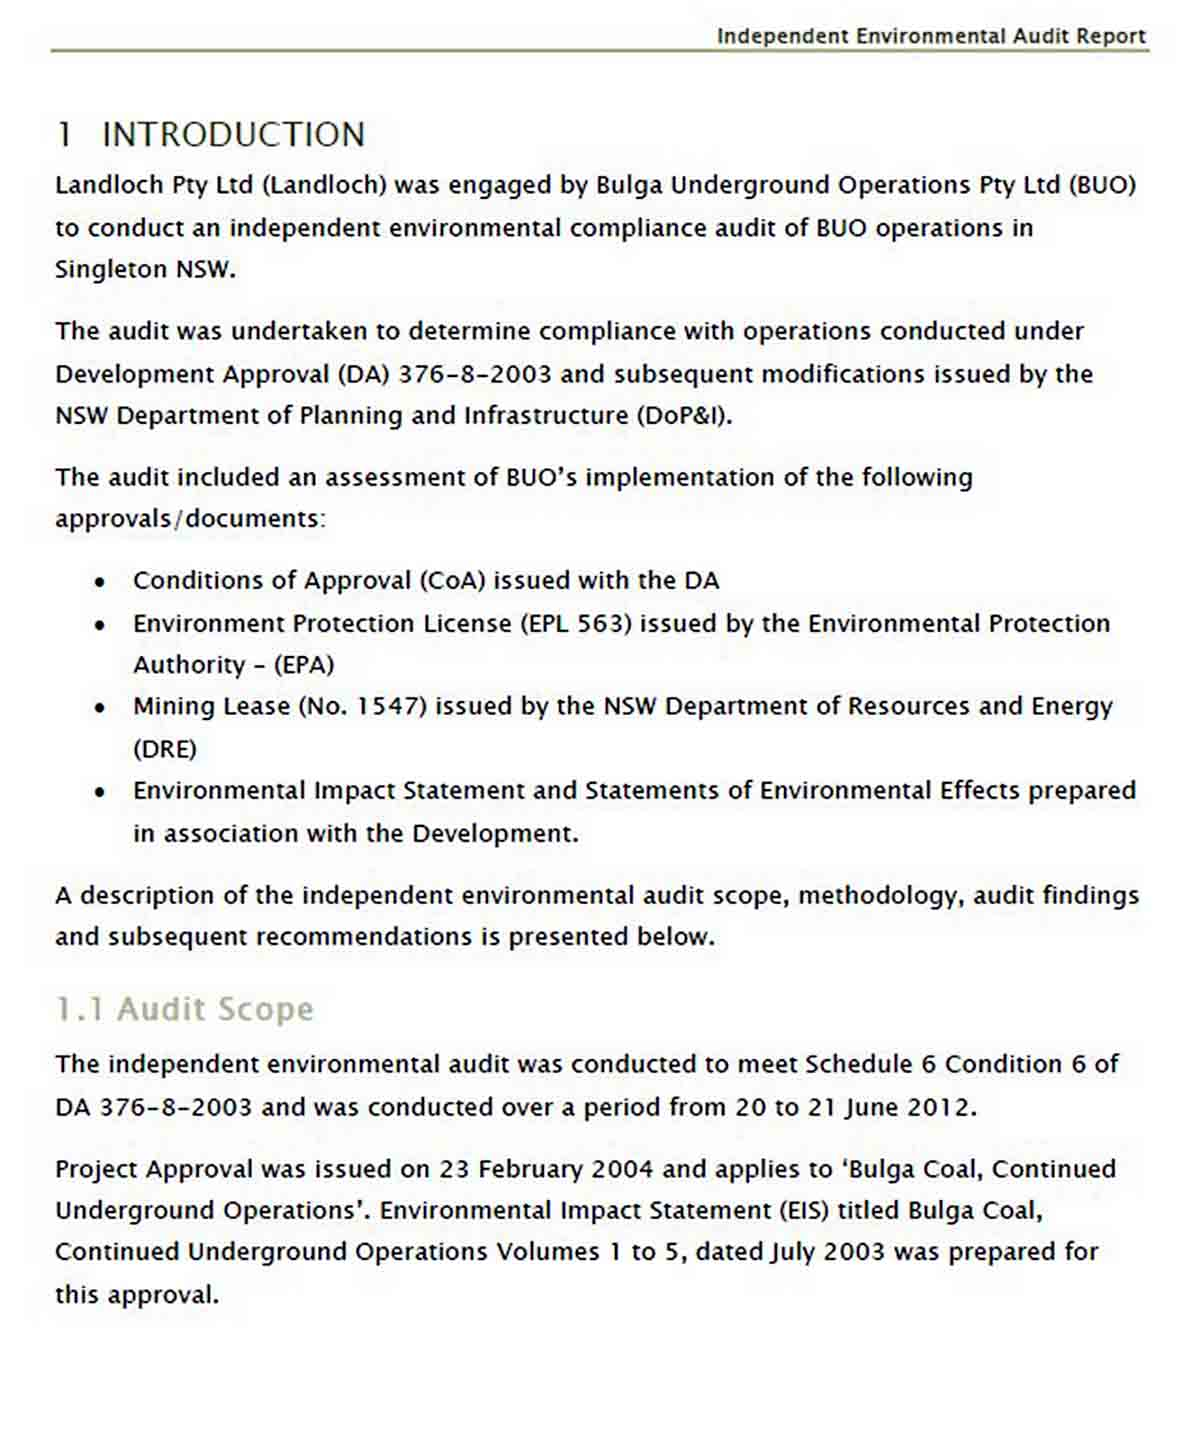 Independent Environmental Audit Report sample